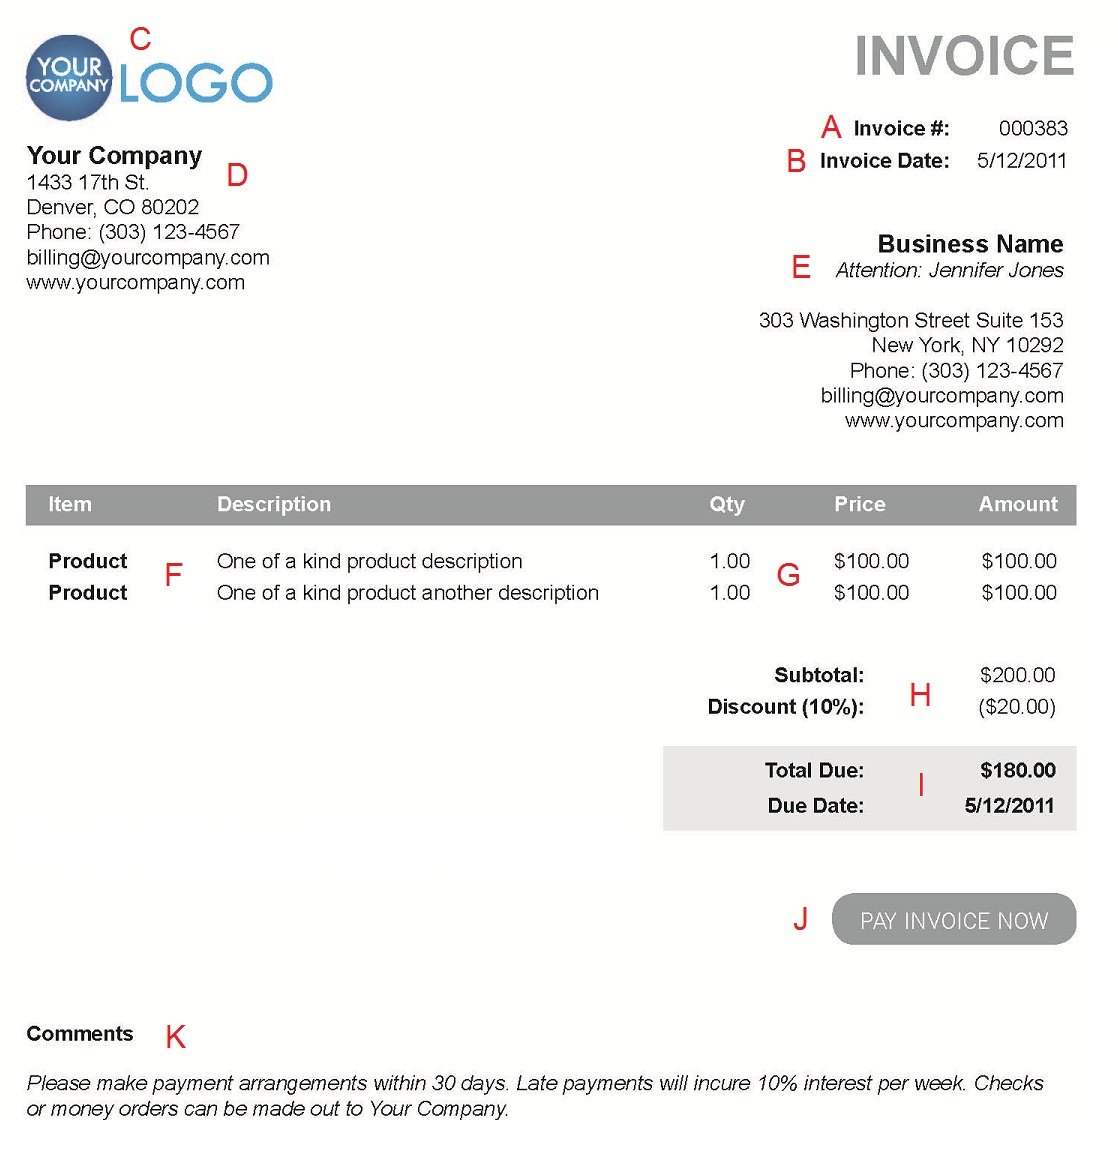 Coolmathgamesus  Unusual The  Different Sections Of An Electronic Payment Invoice With Fetching A  With Delightful A Receipt Template Also Official Receipt Template Word In Addition How To Organize Bills And Receipts And Eticket Receipt As Well As Acknowledge The Receipt Of A Resume Additionally Template Cash Receipt From Paysimplecom With Coolmathgamesus  Fetching The  Different Sections Of An Electronic Payment Invoice With Delightful A  And Unusual A Receipt Template Also Official Receipt Template Word In Addition How To Organize Bills And Receipts From Paysimplecom